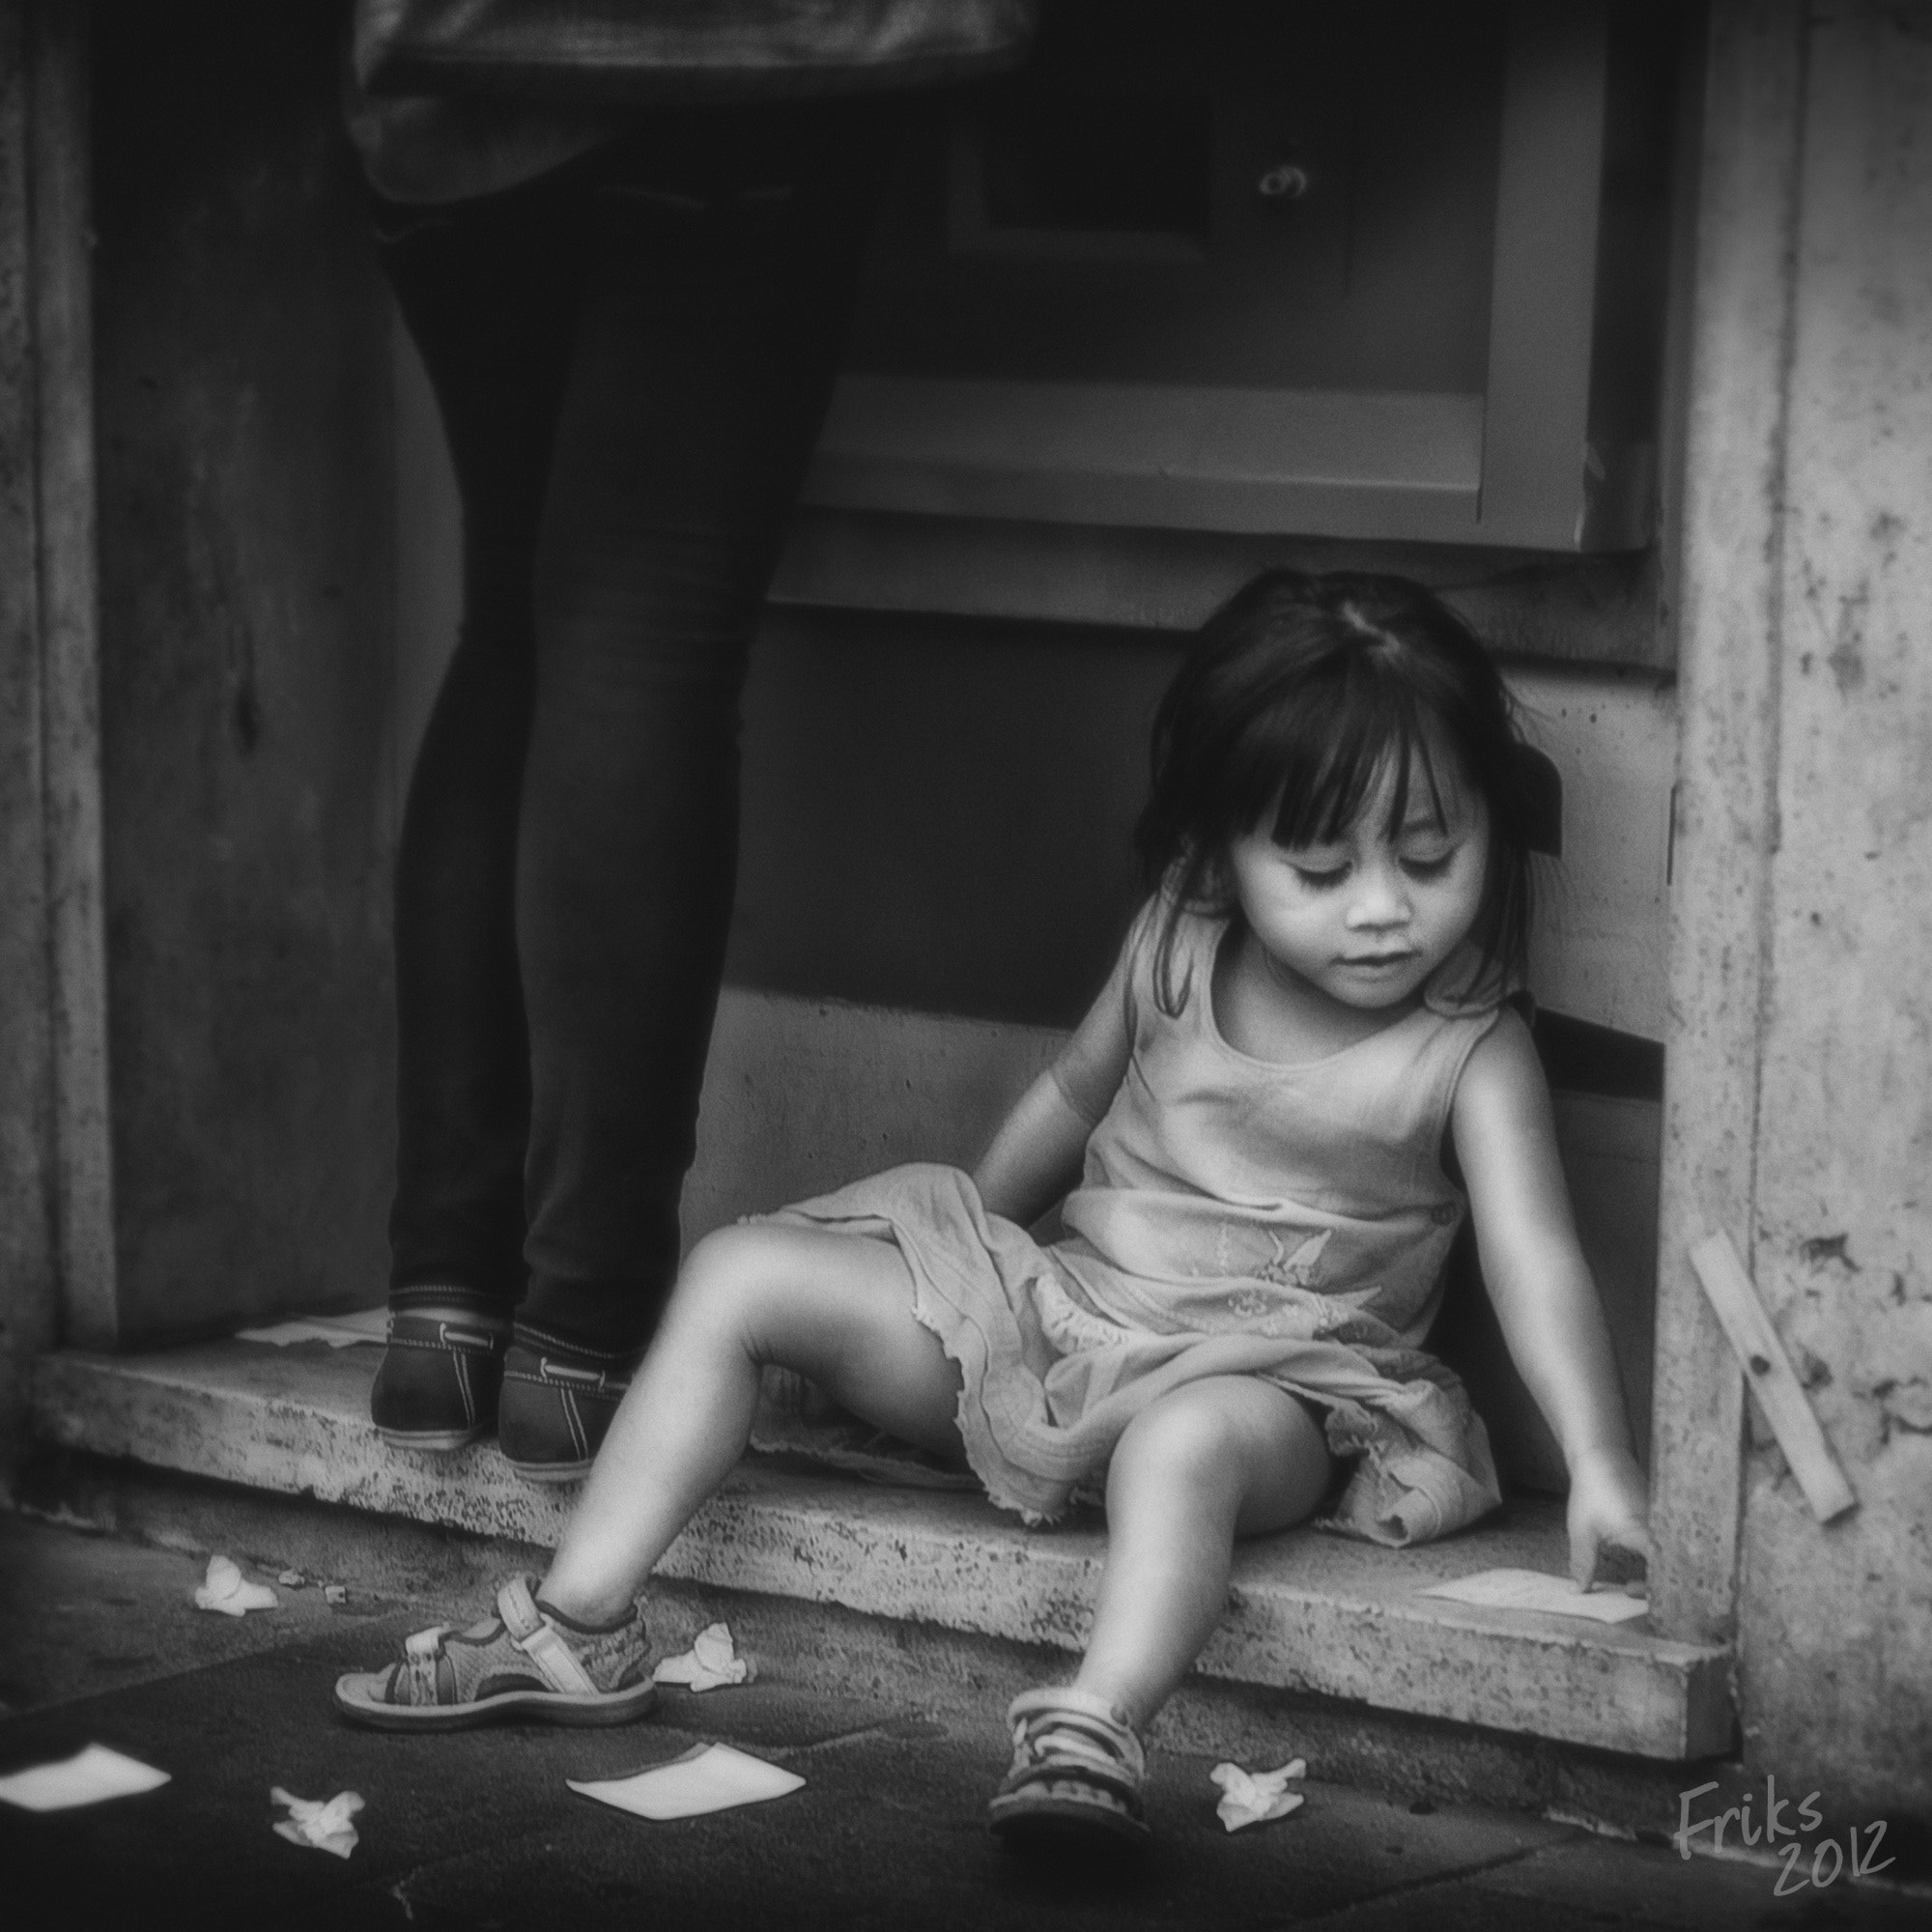 Photograph LITTLE GIRL TICKET by Mr Friks  on 500px